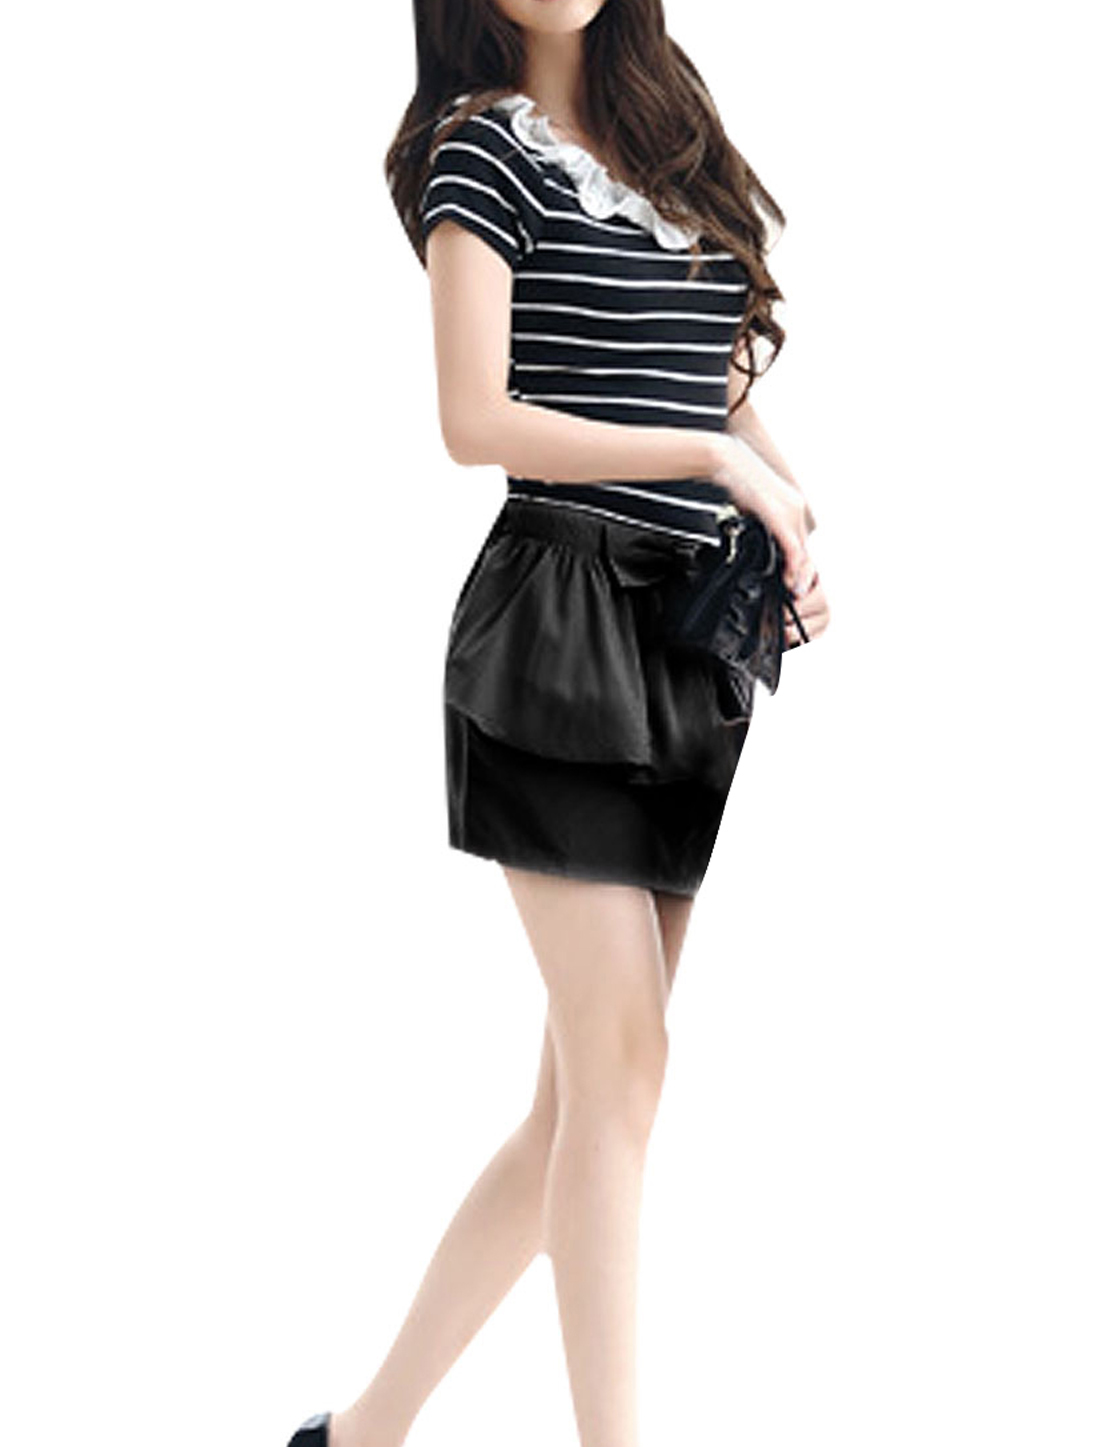 Bowtie Decor Black Waist Two Layers Skirt XS for Ladies